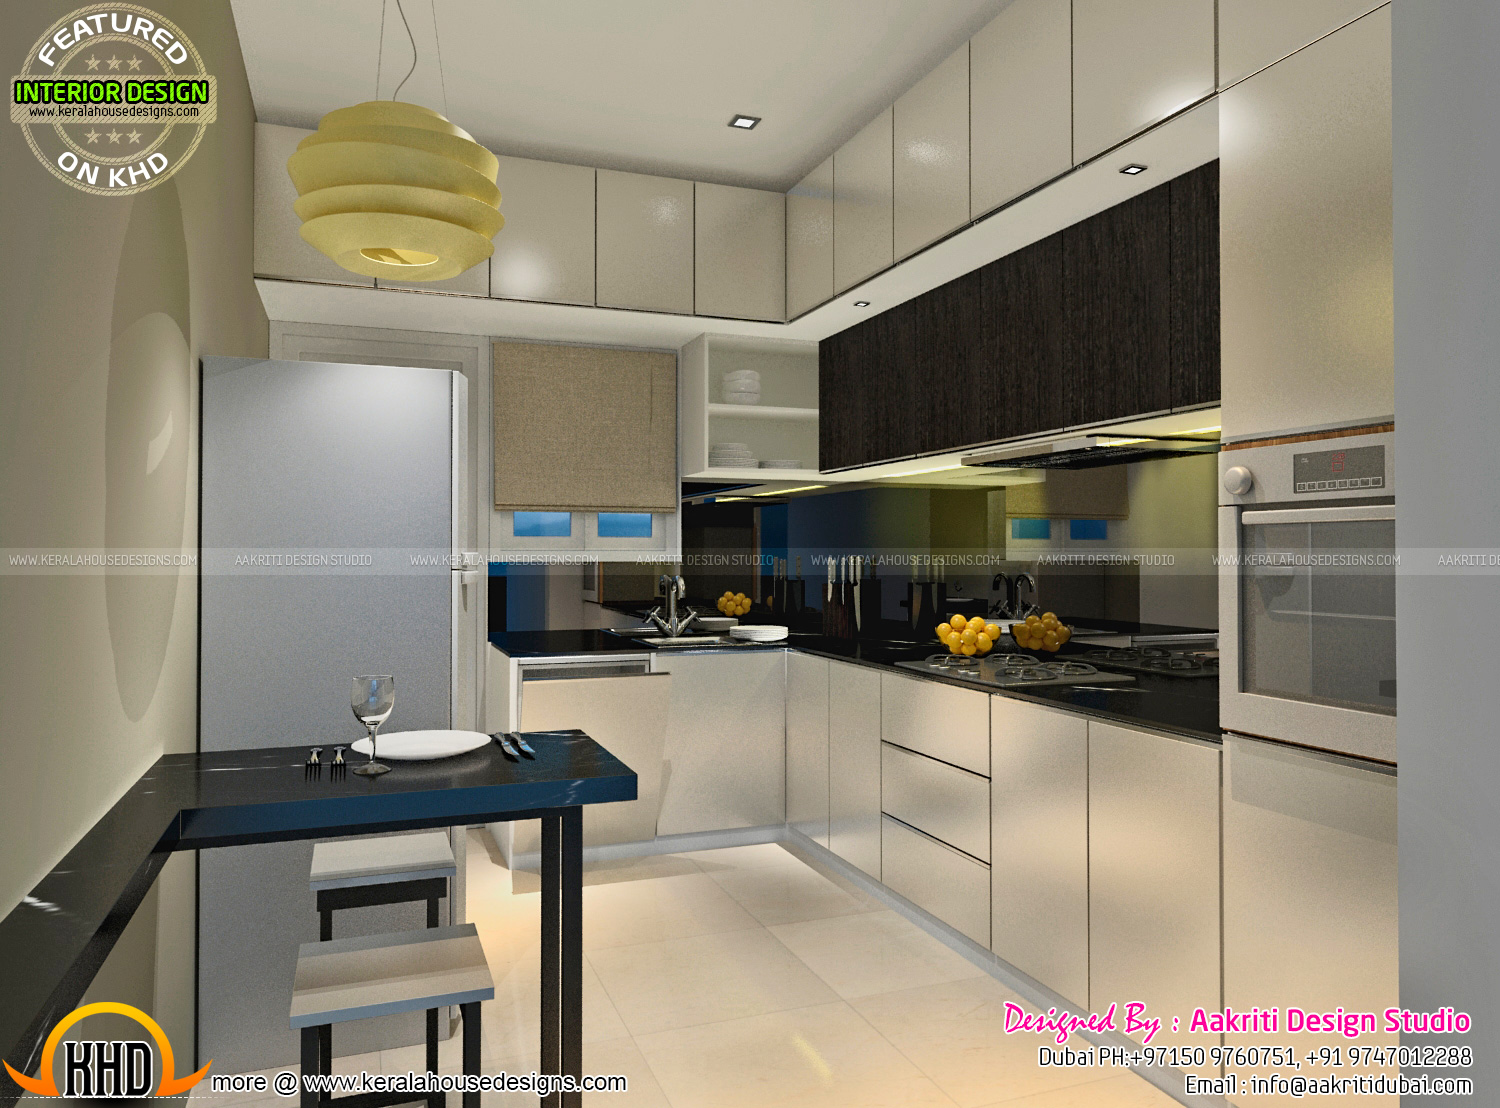 Dining kitchen wash area interior kerala home design House model interior design